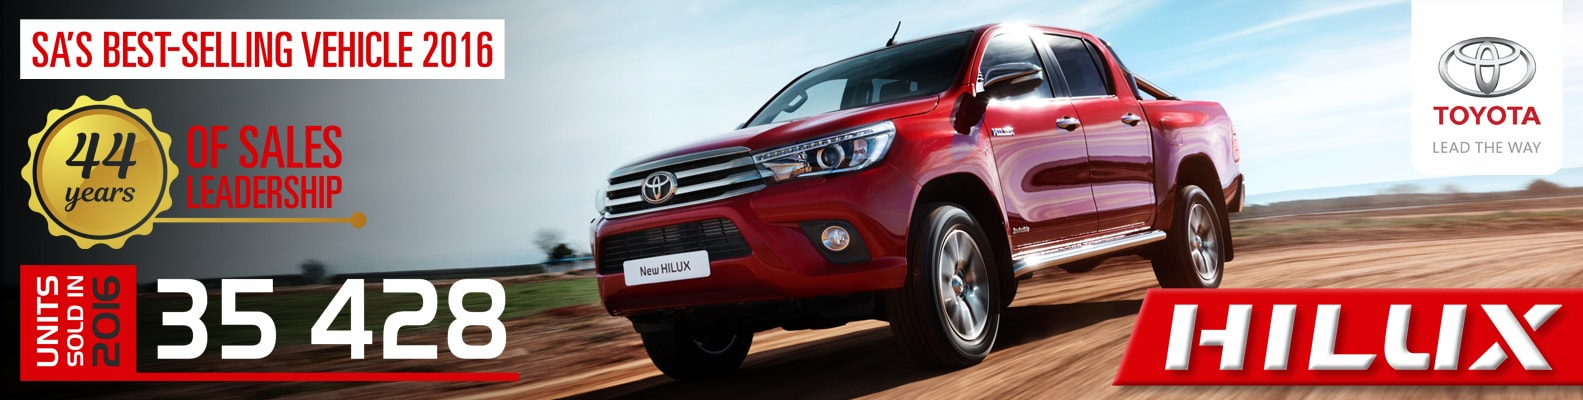 Hilux - Best Selling